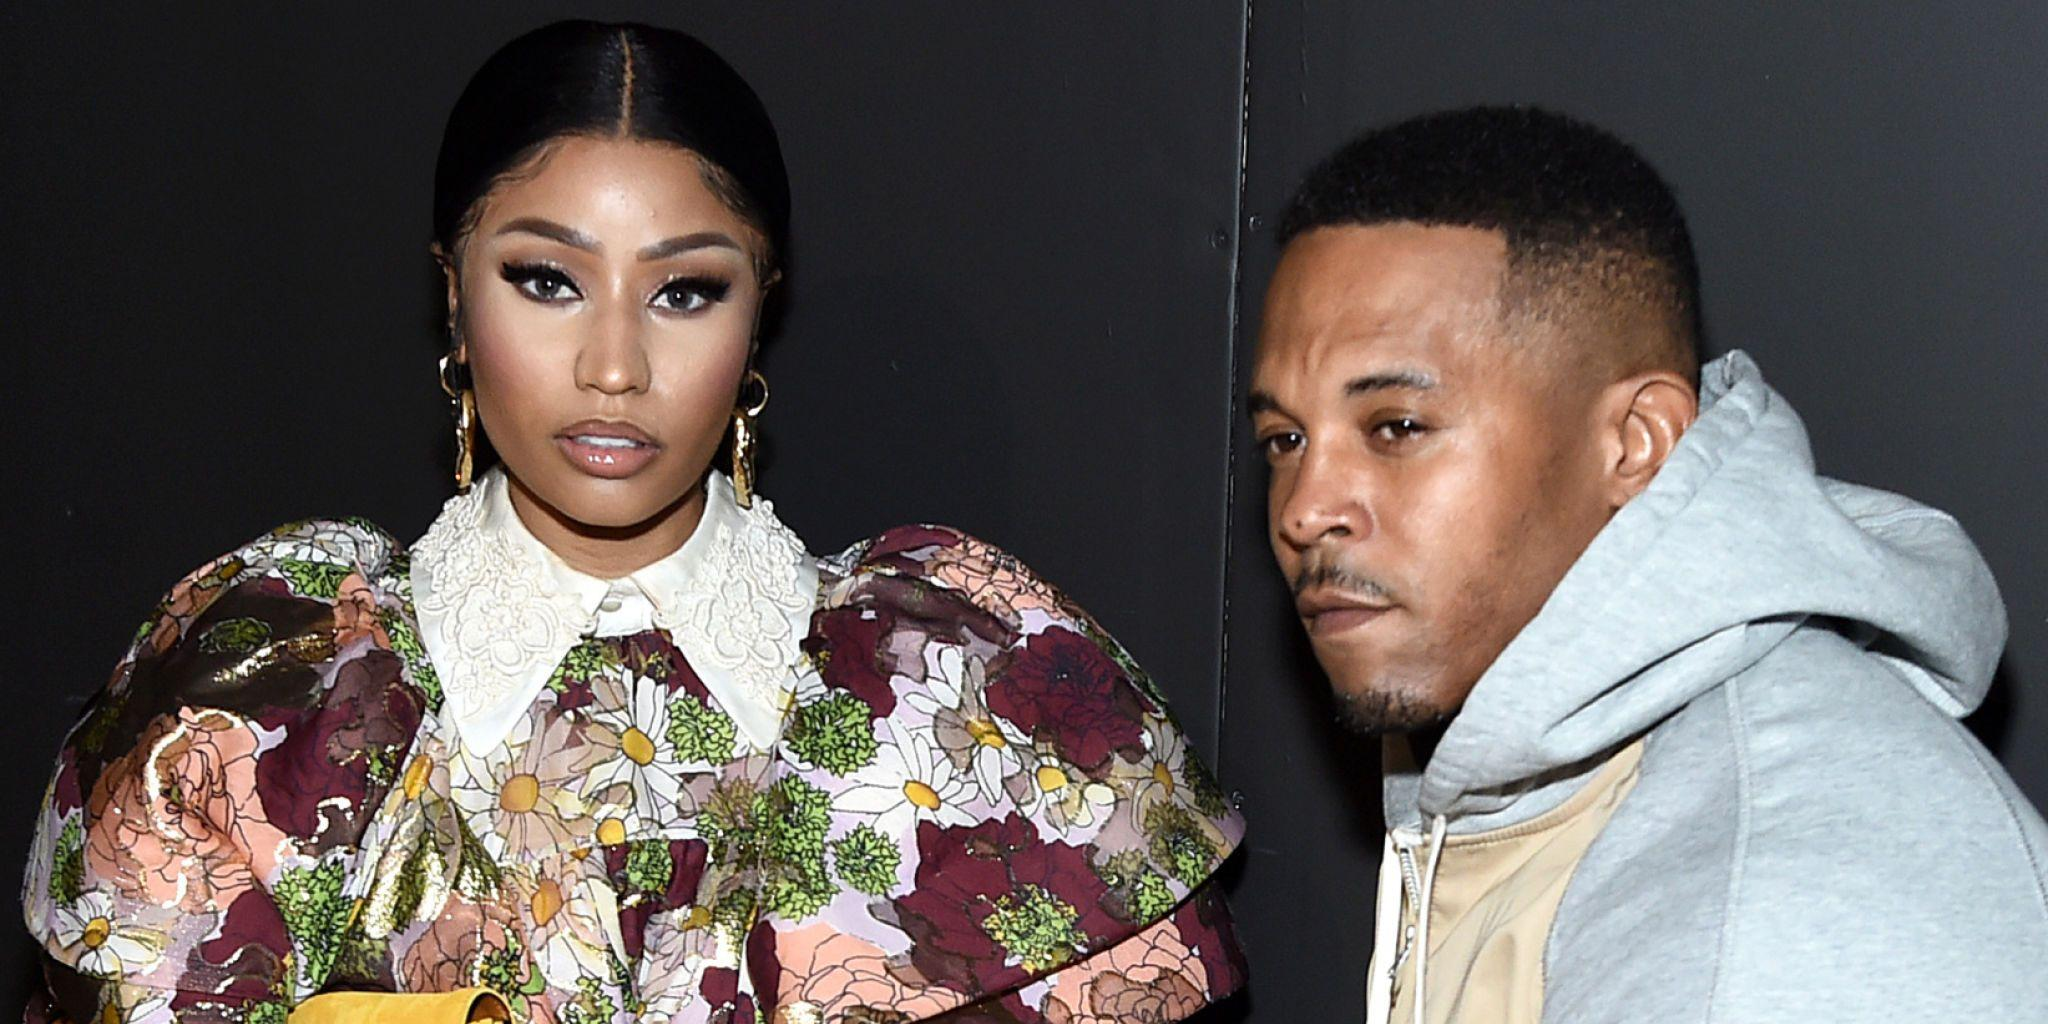 Nicki Minaj Supports And Stands By Hubby Kenneth Petty Regardless Of His 'Embarrassing' Arrest, Source Says!